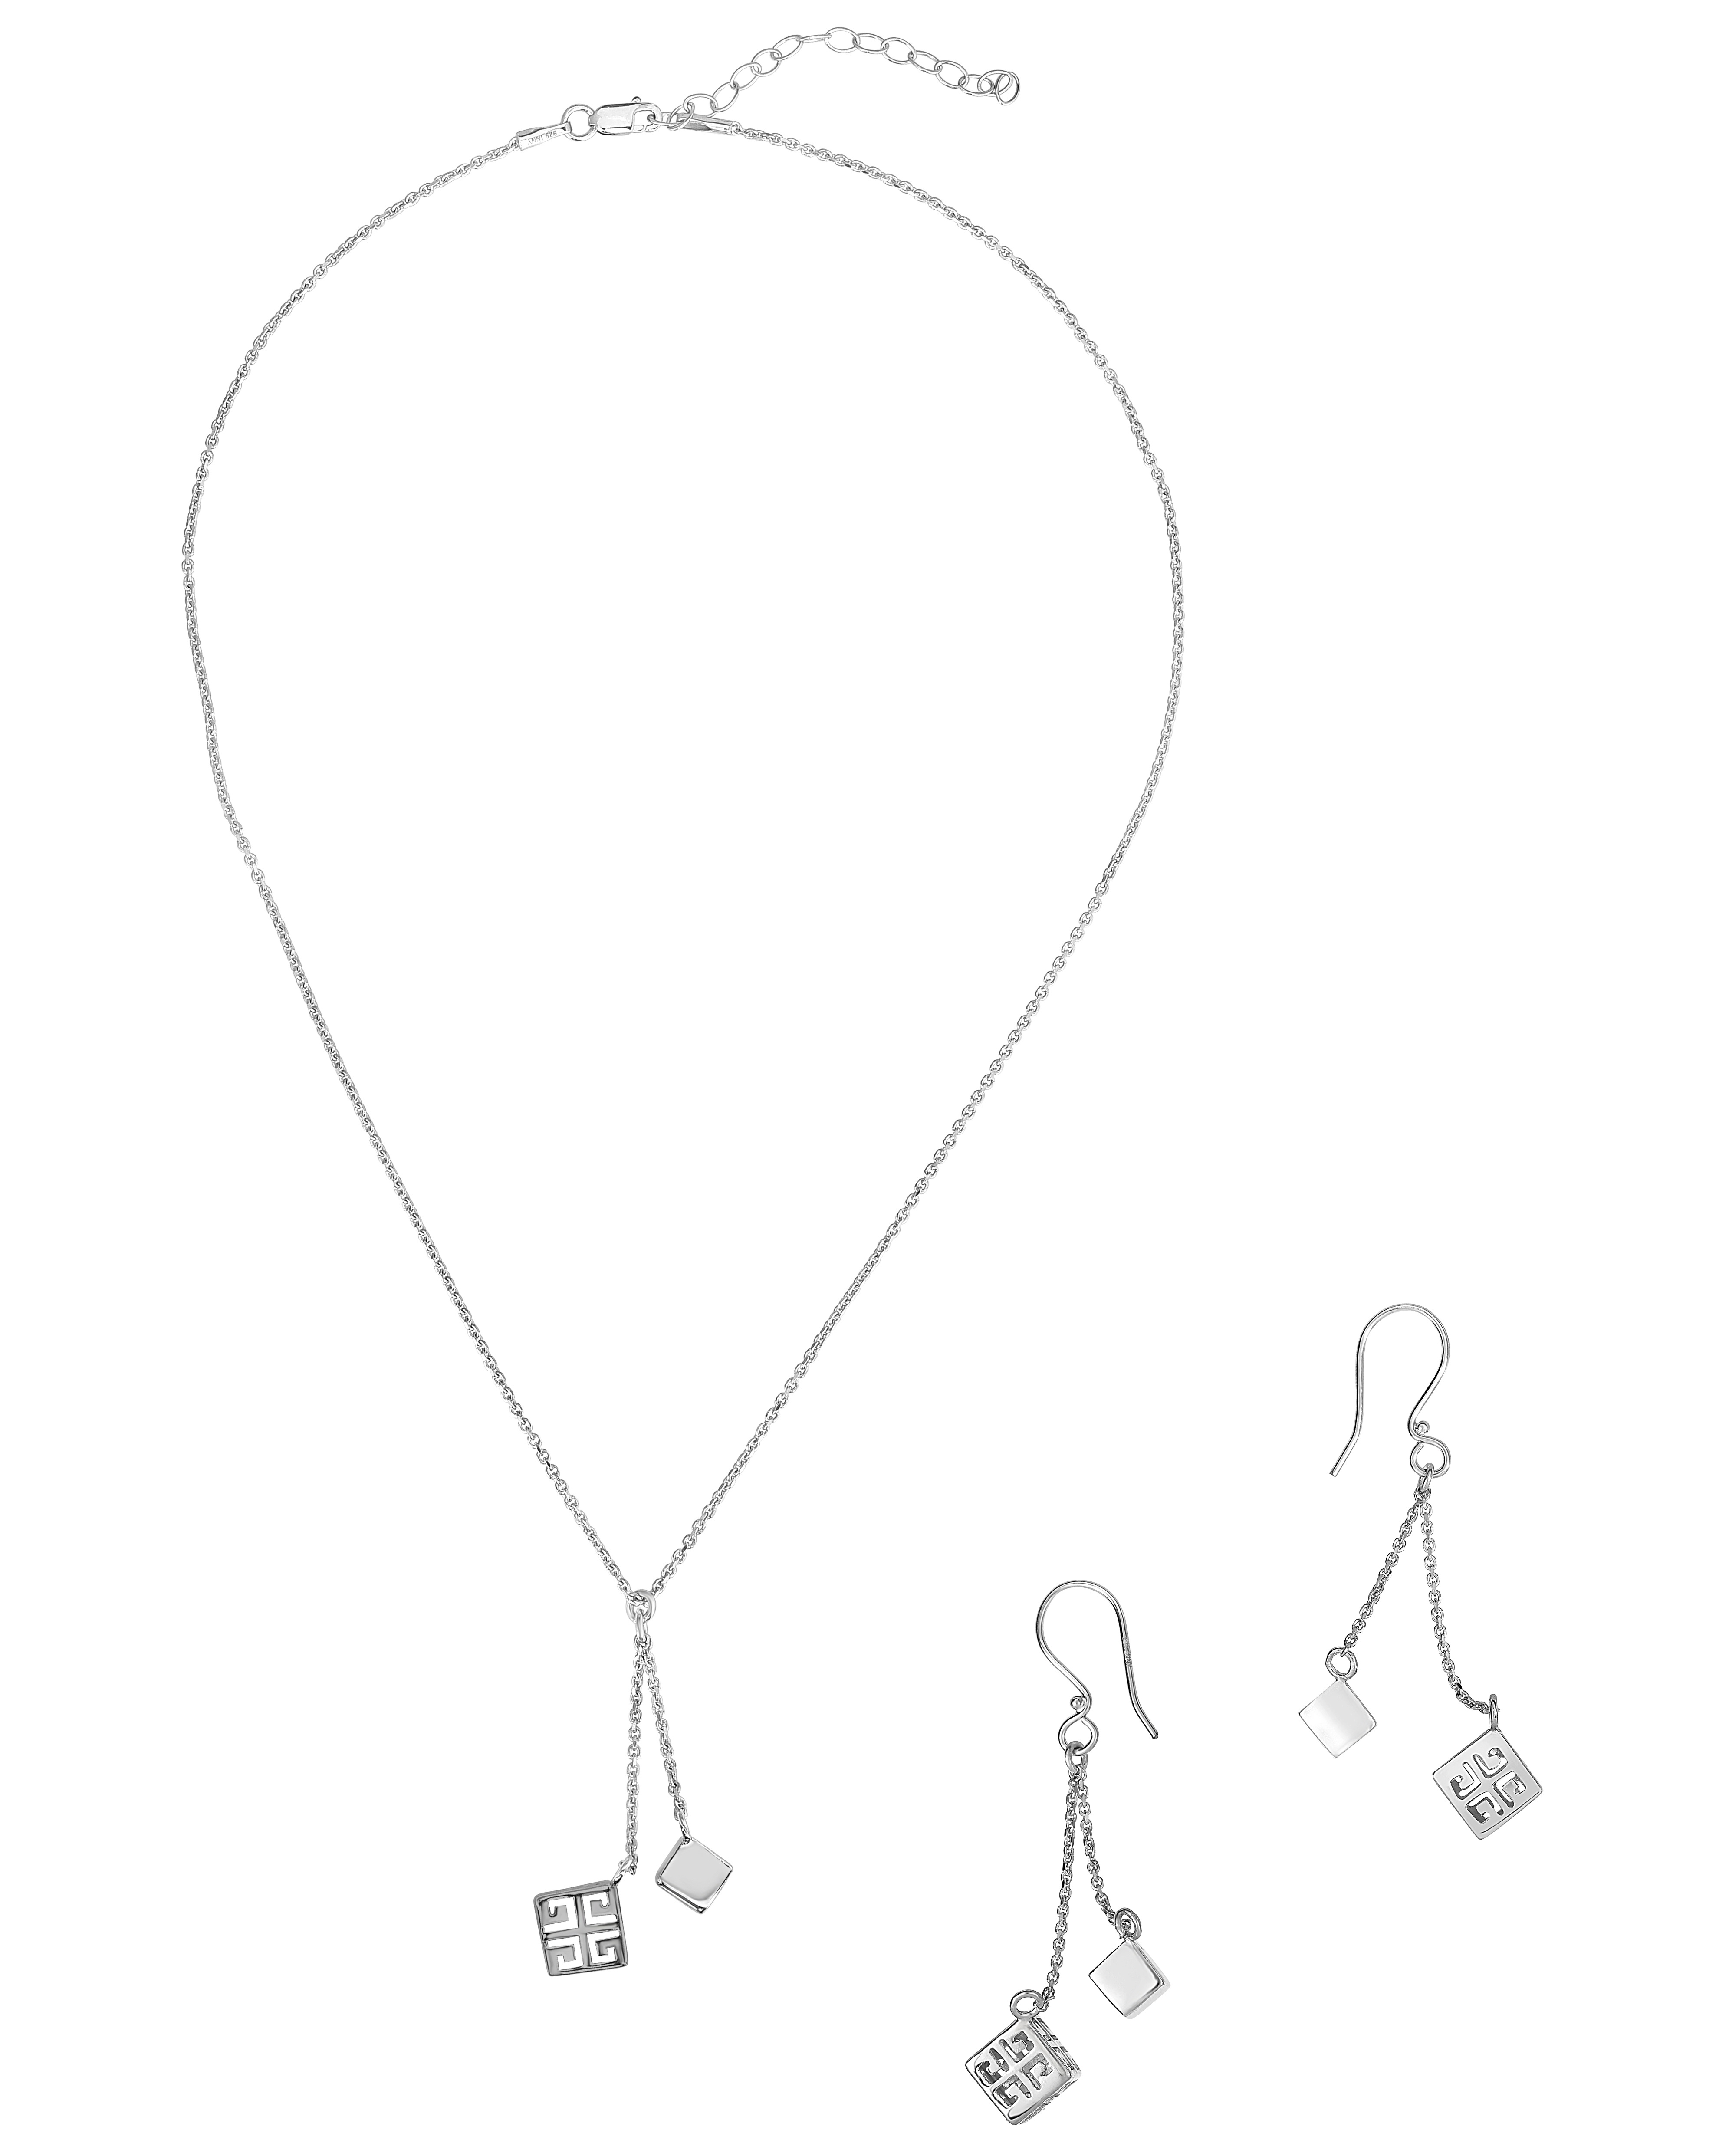 .925 Sterling Silver Expandable 16 + 2 Inch Designer Necklace and Earrings Set with Greek Designed Cube by Glad Gold